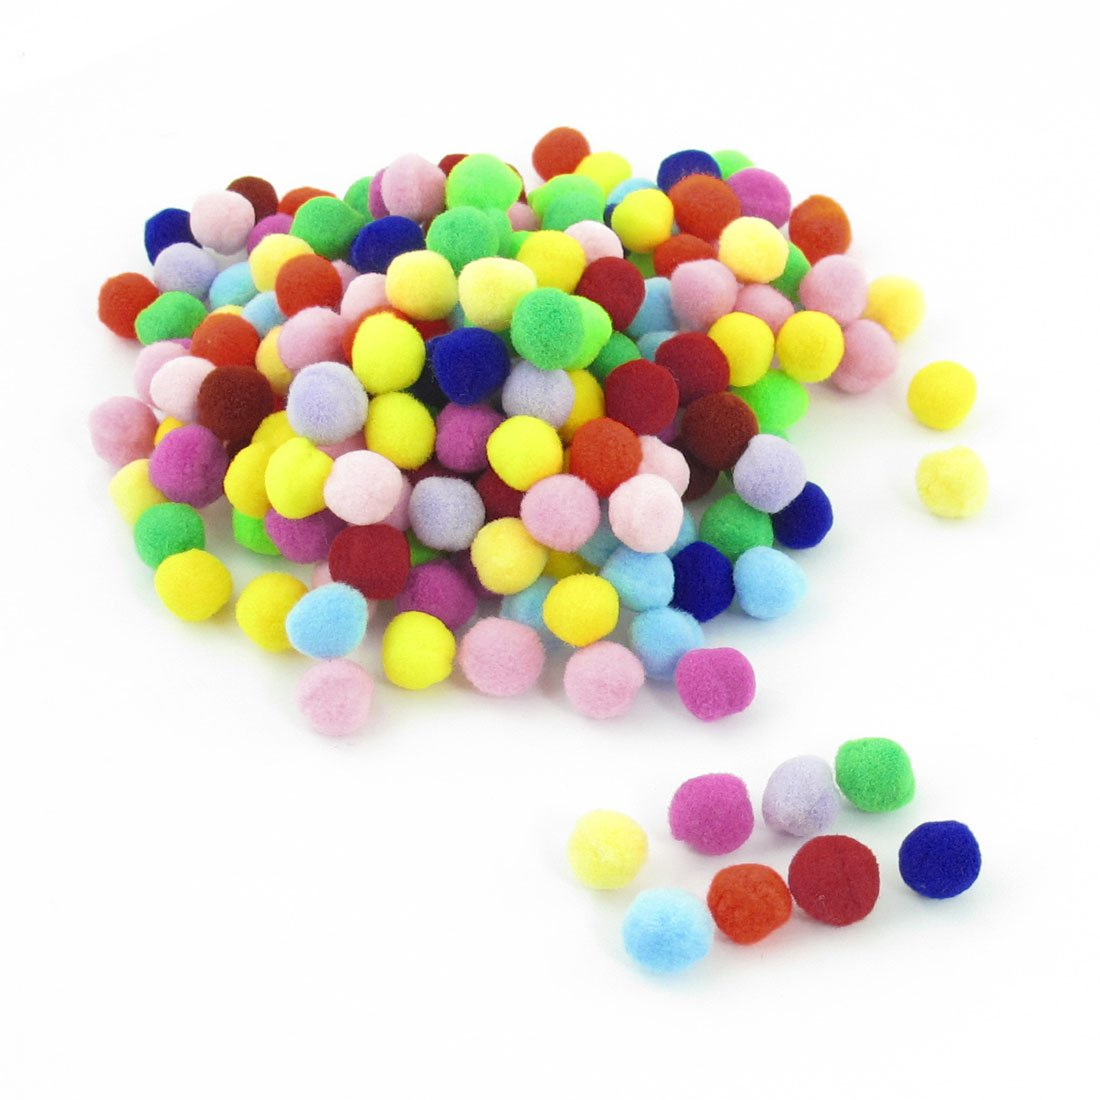 WSFS Wholesale 2 X 200 Pcs 10mm Dia Plush Colorful Pom Ball Sew On Clothes Trousers Bags<br><br>Aliexpress